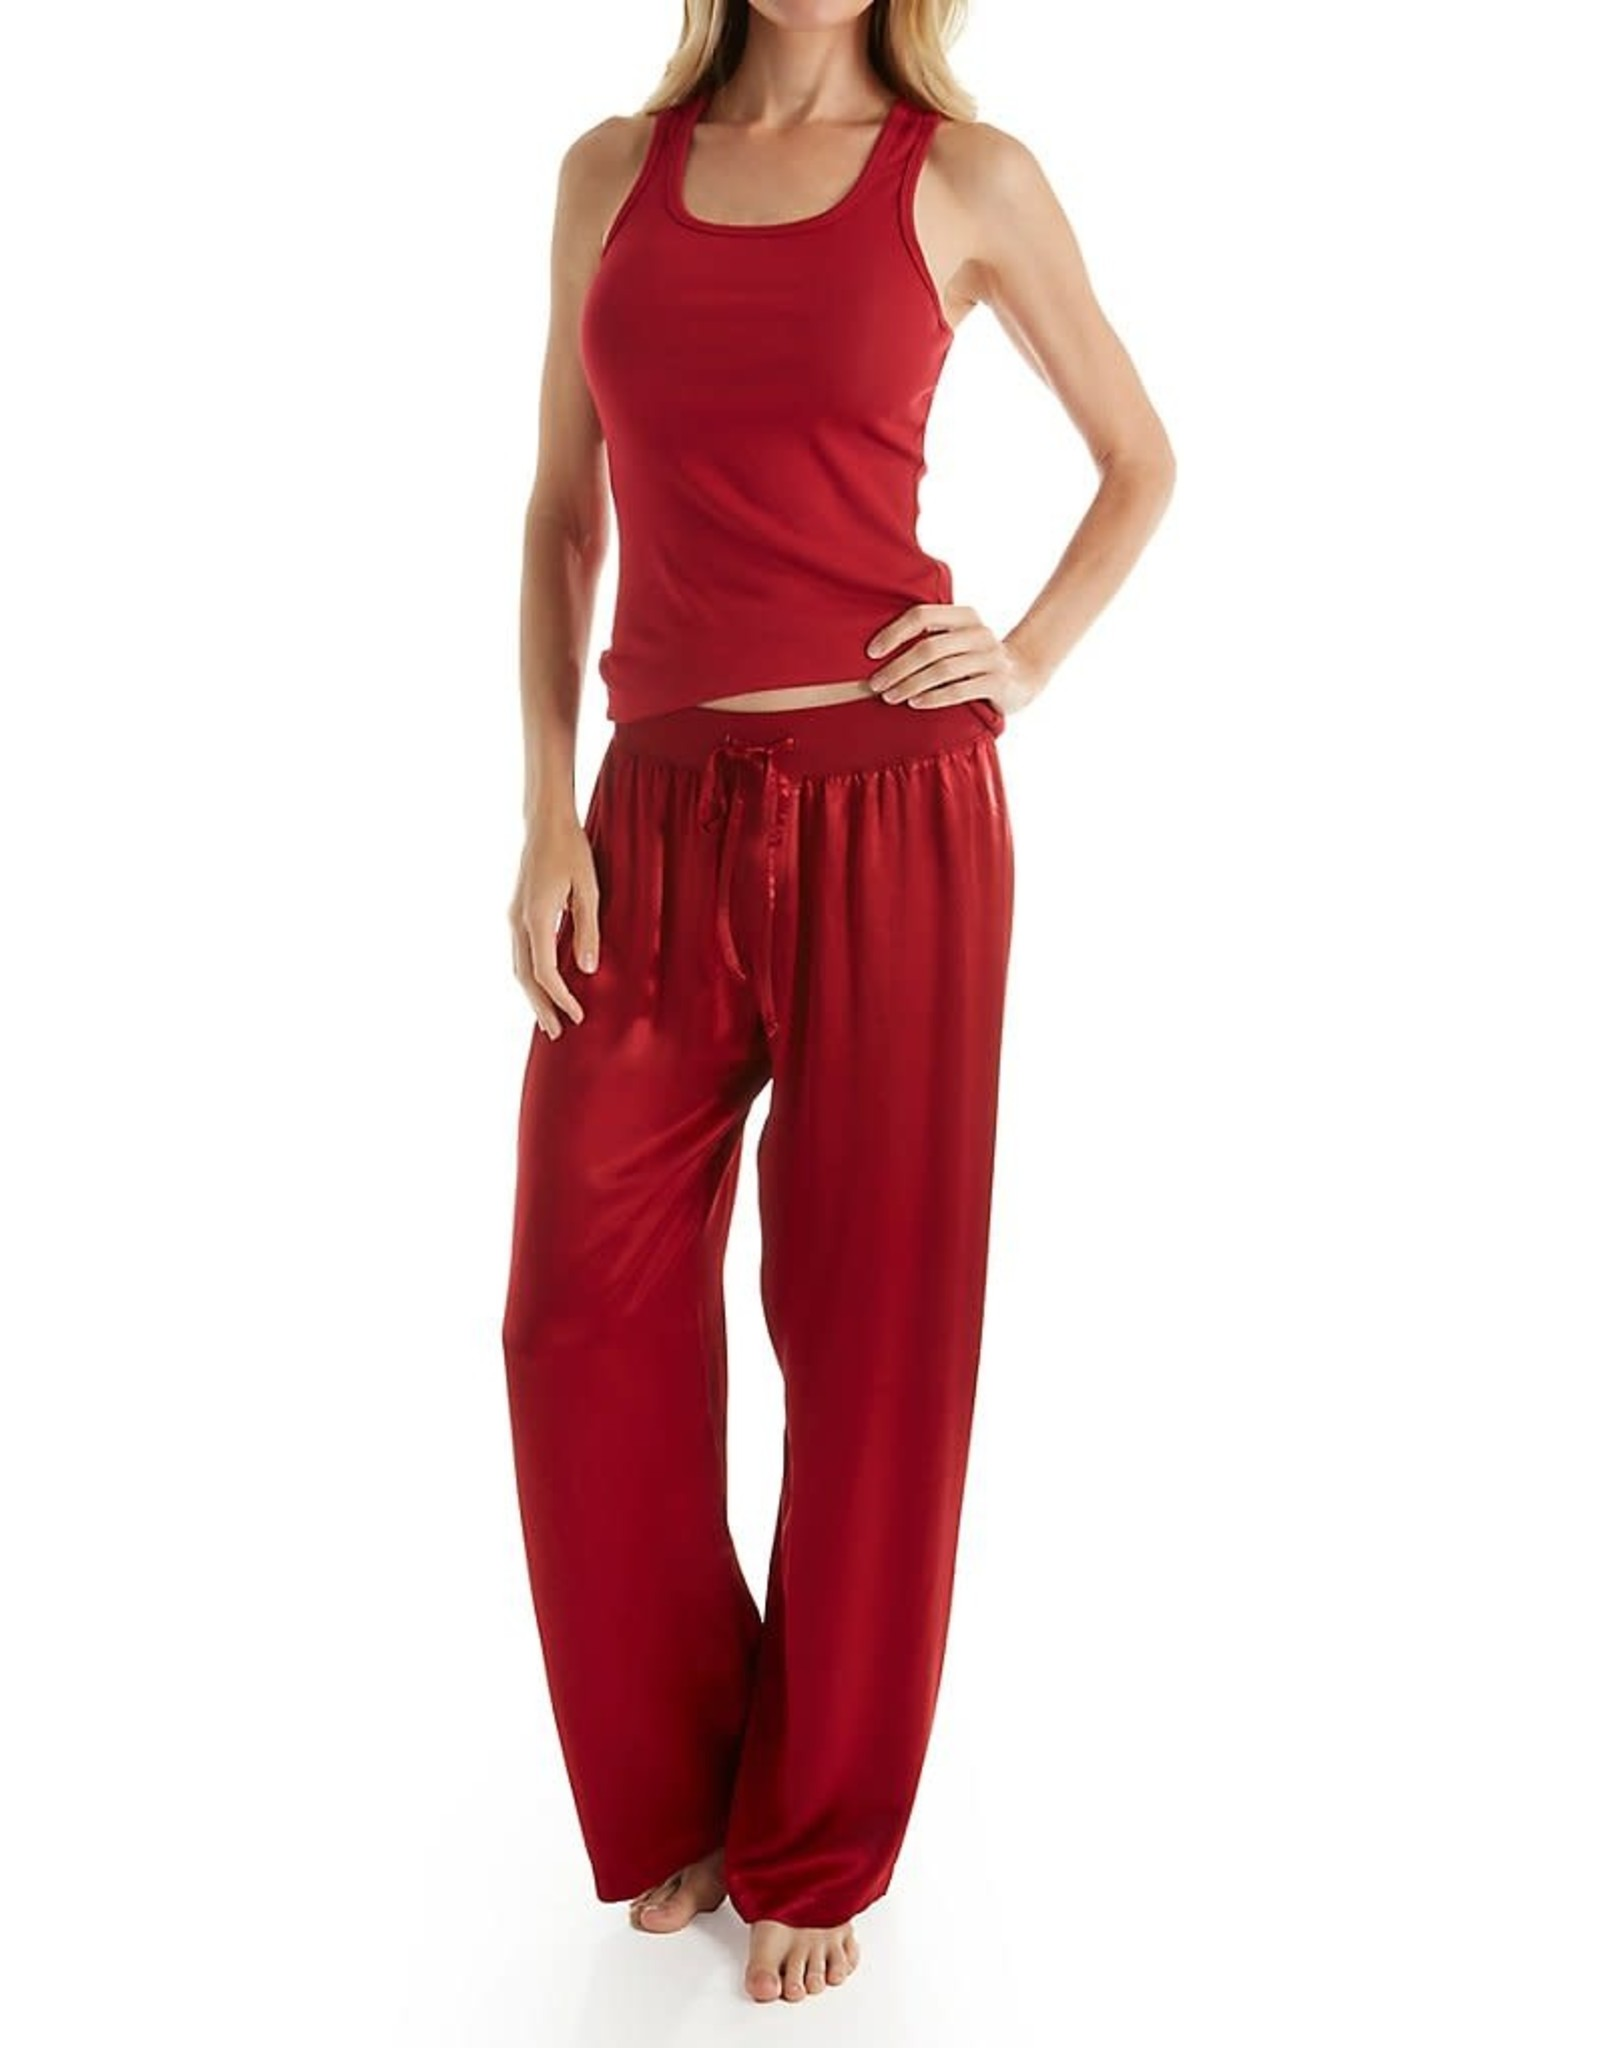 PJ Harlow PJ Harlow Jolie Satin Pant | Pretty Please Boutique & Gifts